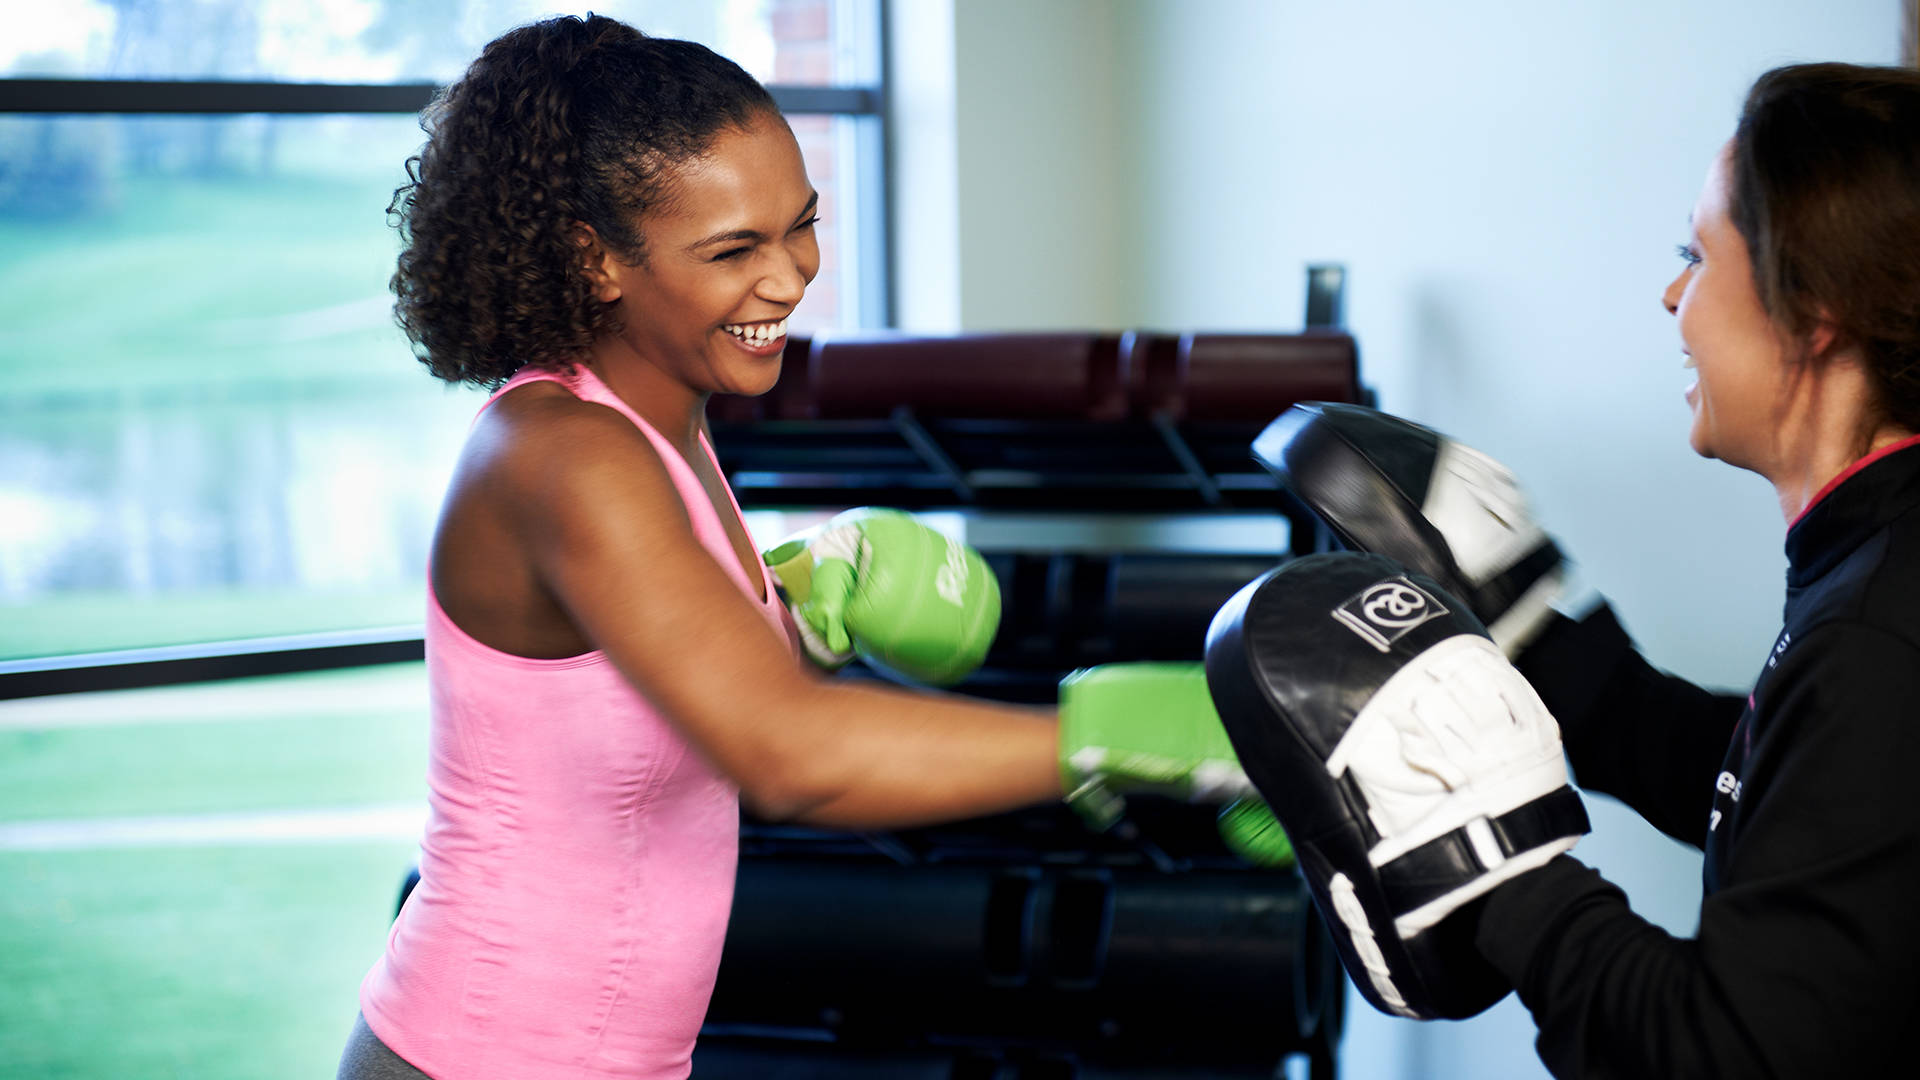 A female health club member and female personal training using boxing gloves and pads